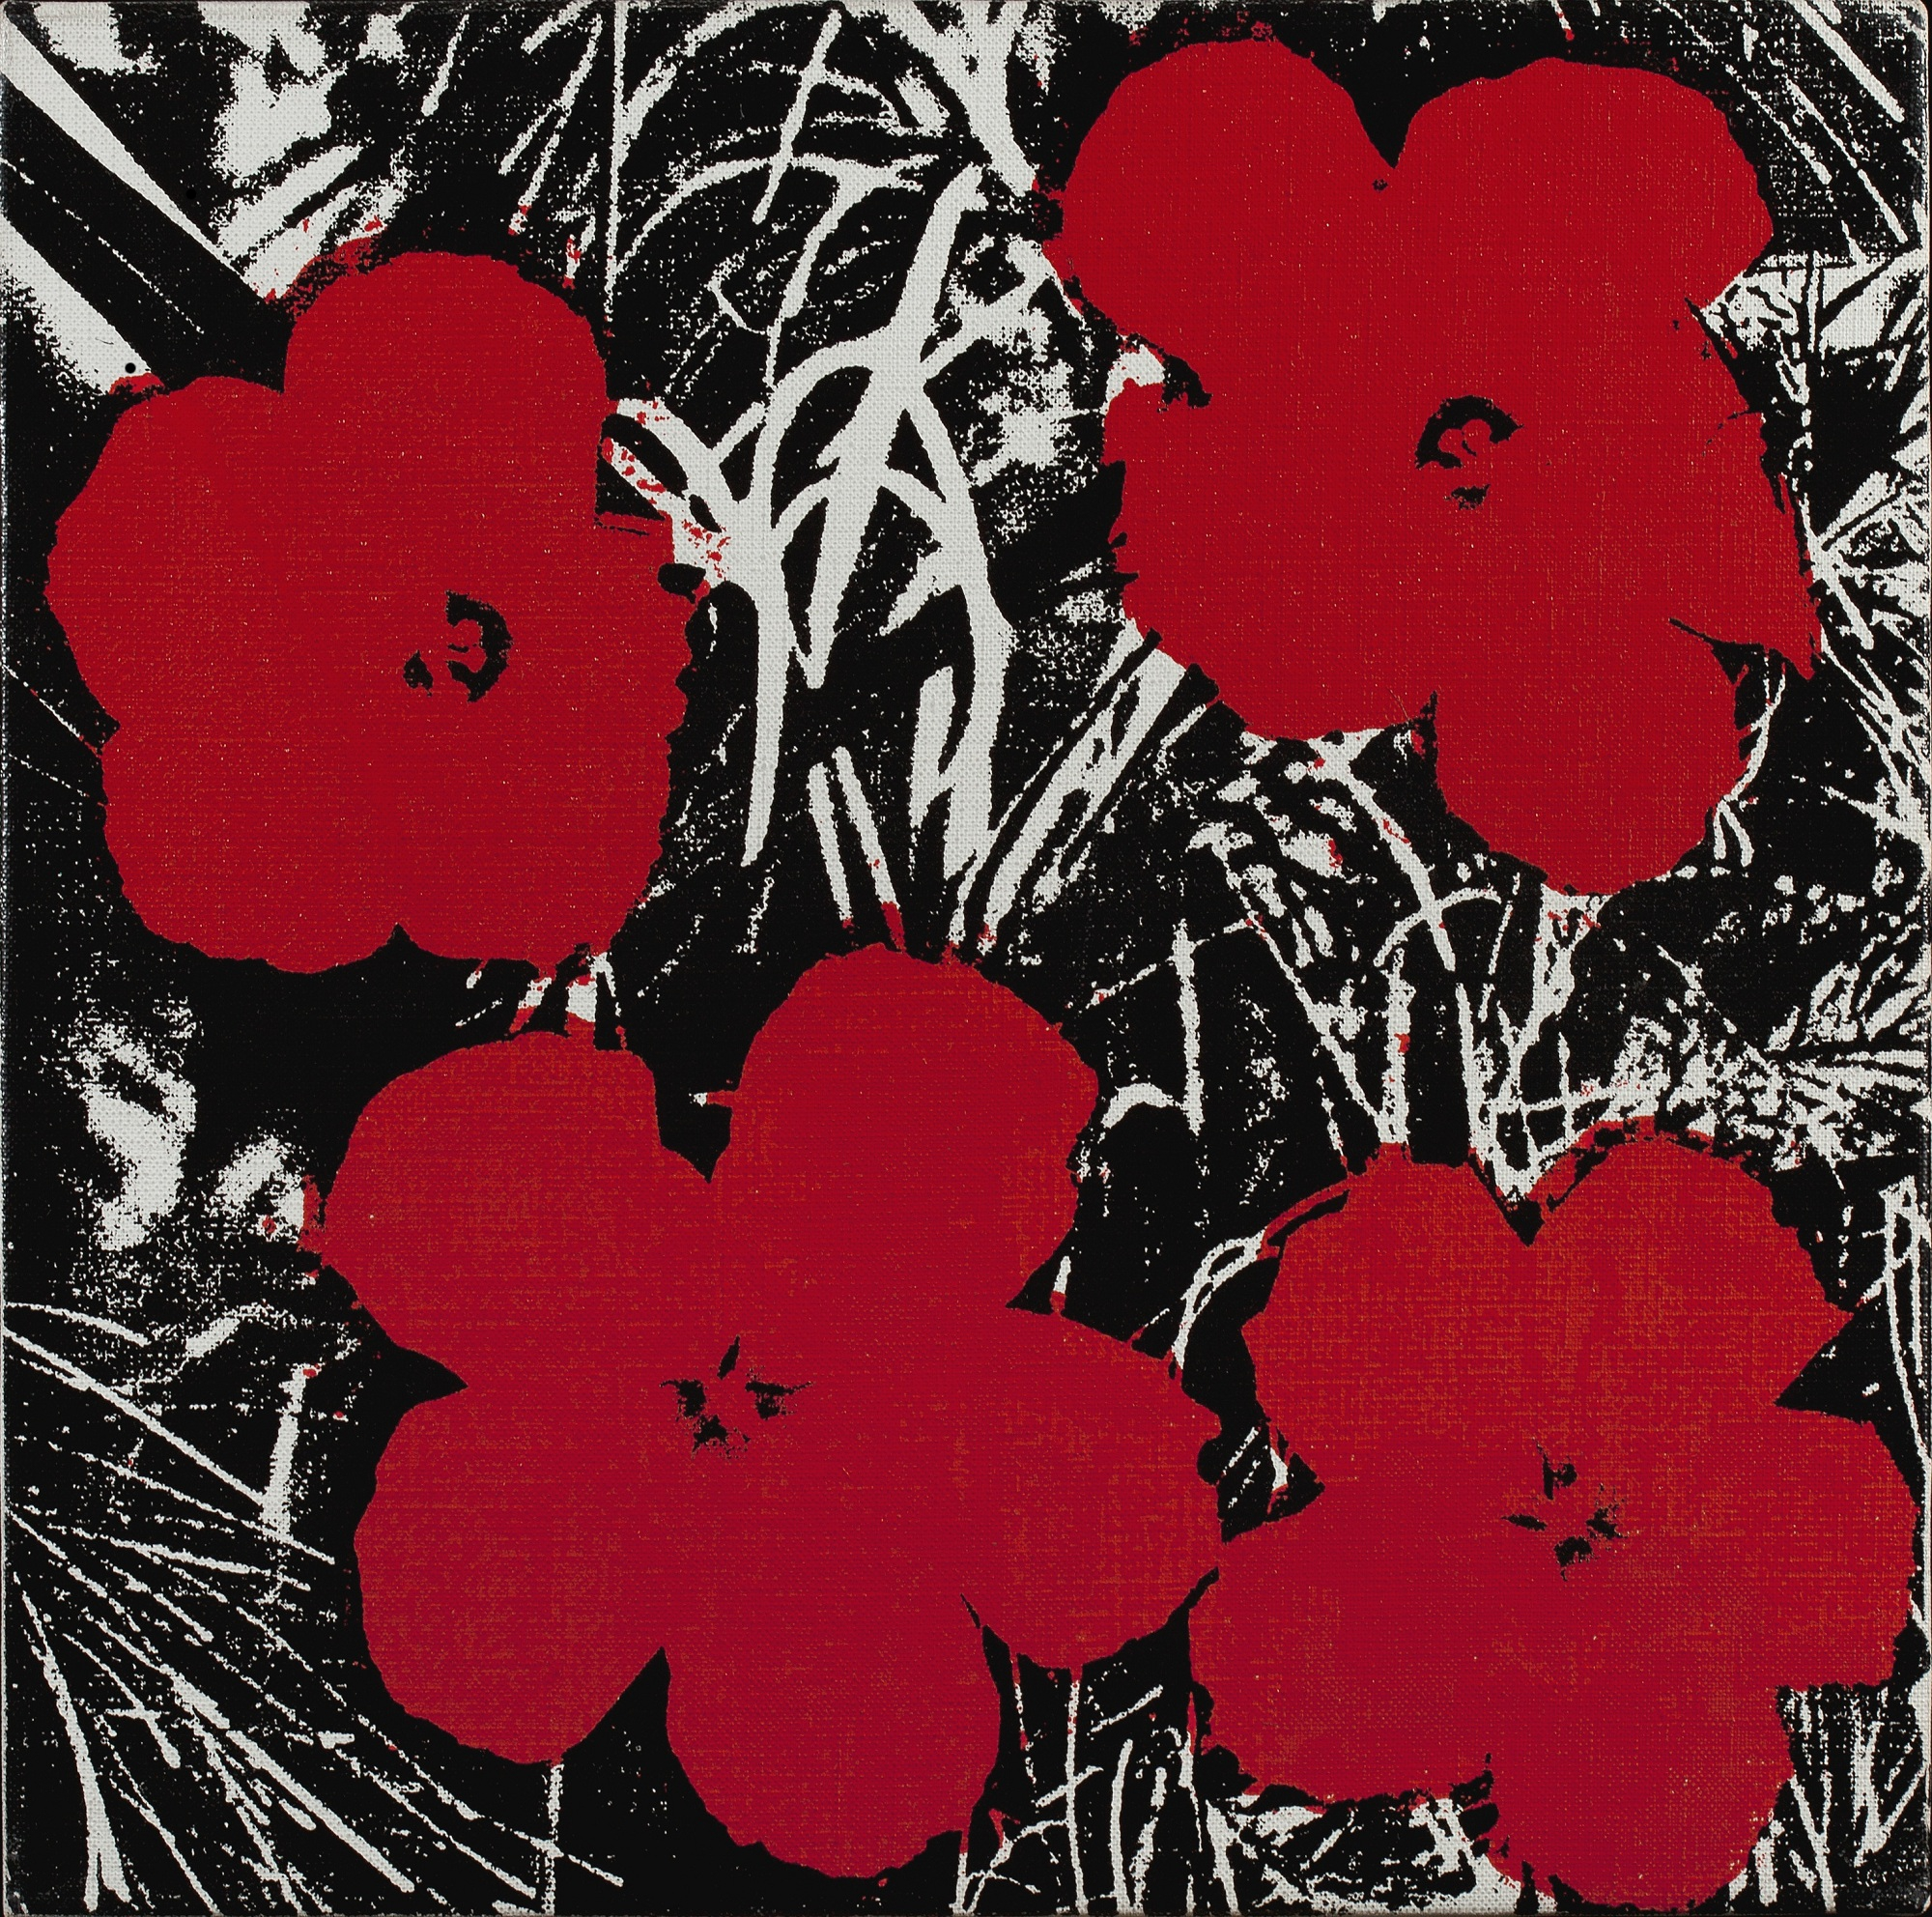 12 Inch Flower Painting Andy Warhol - Guy Hepner